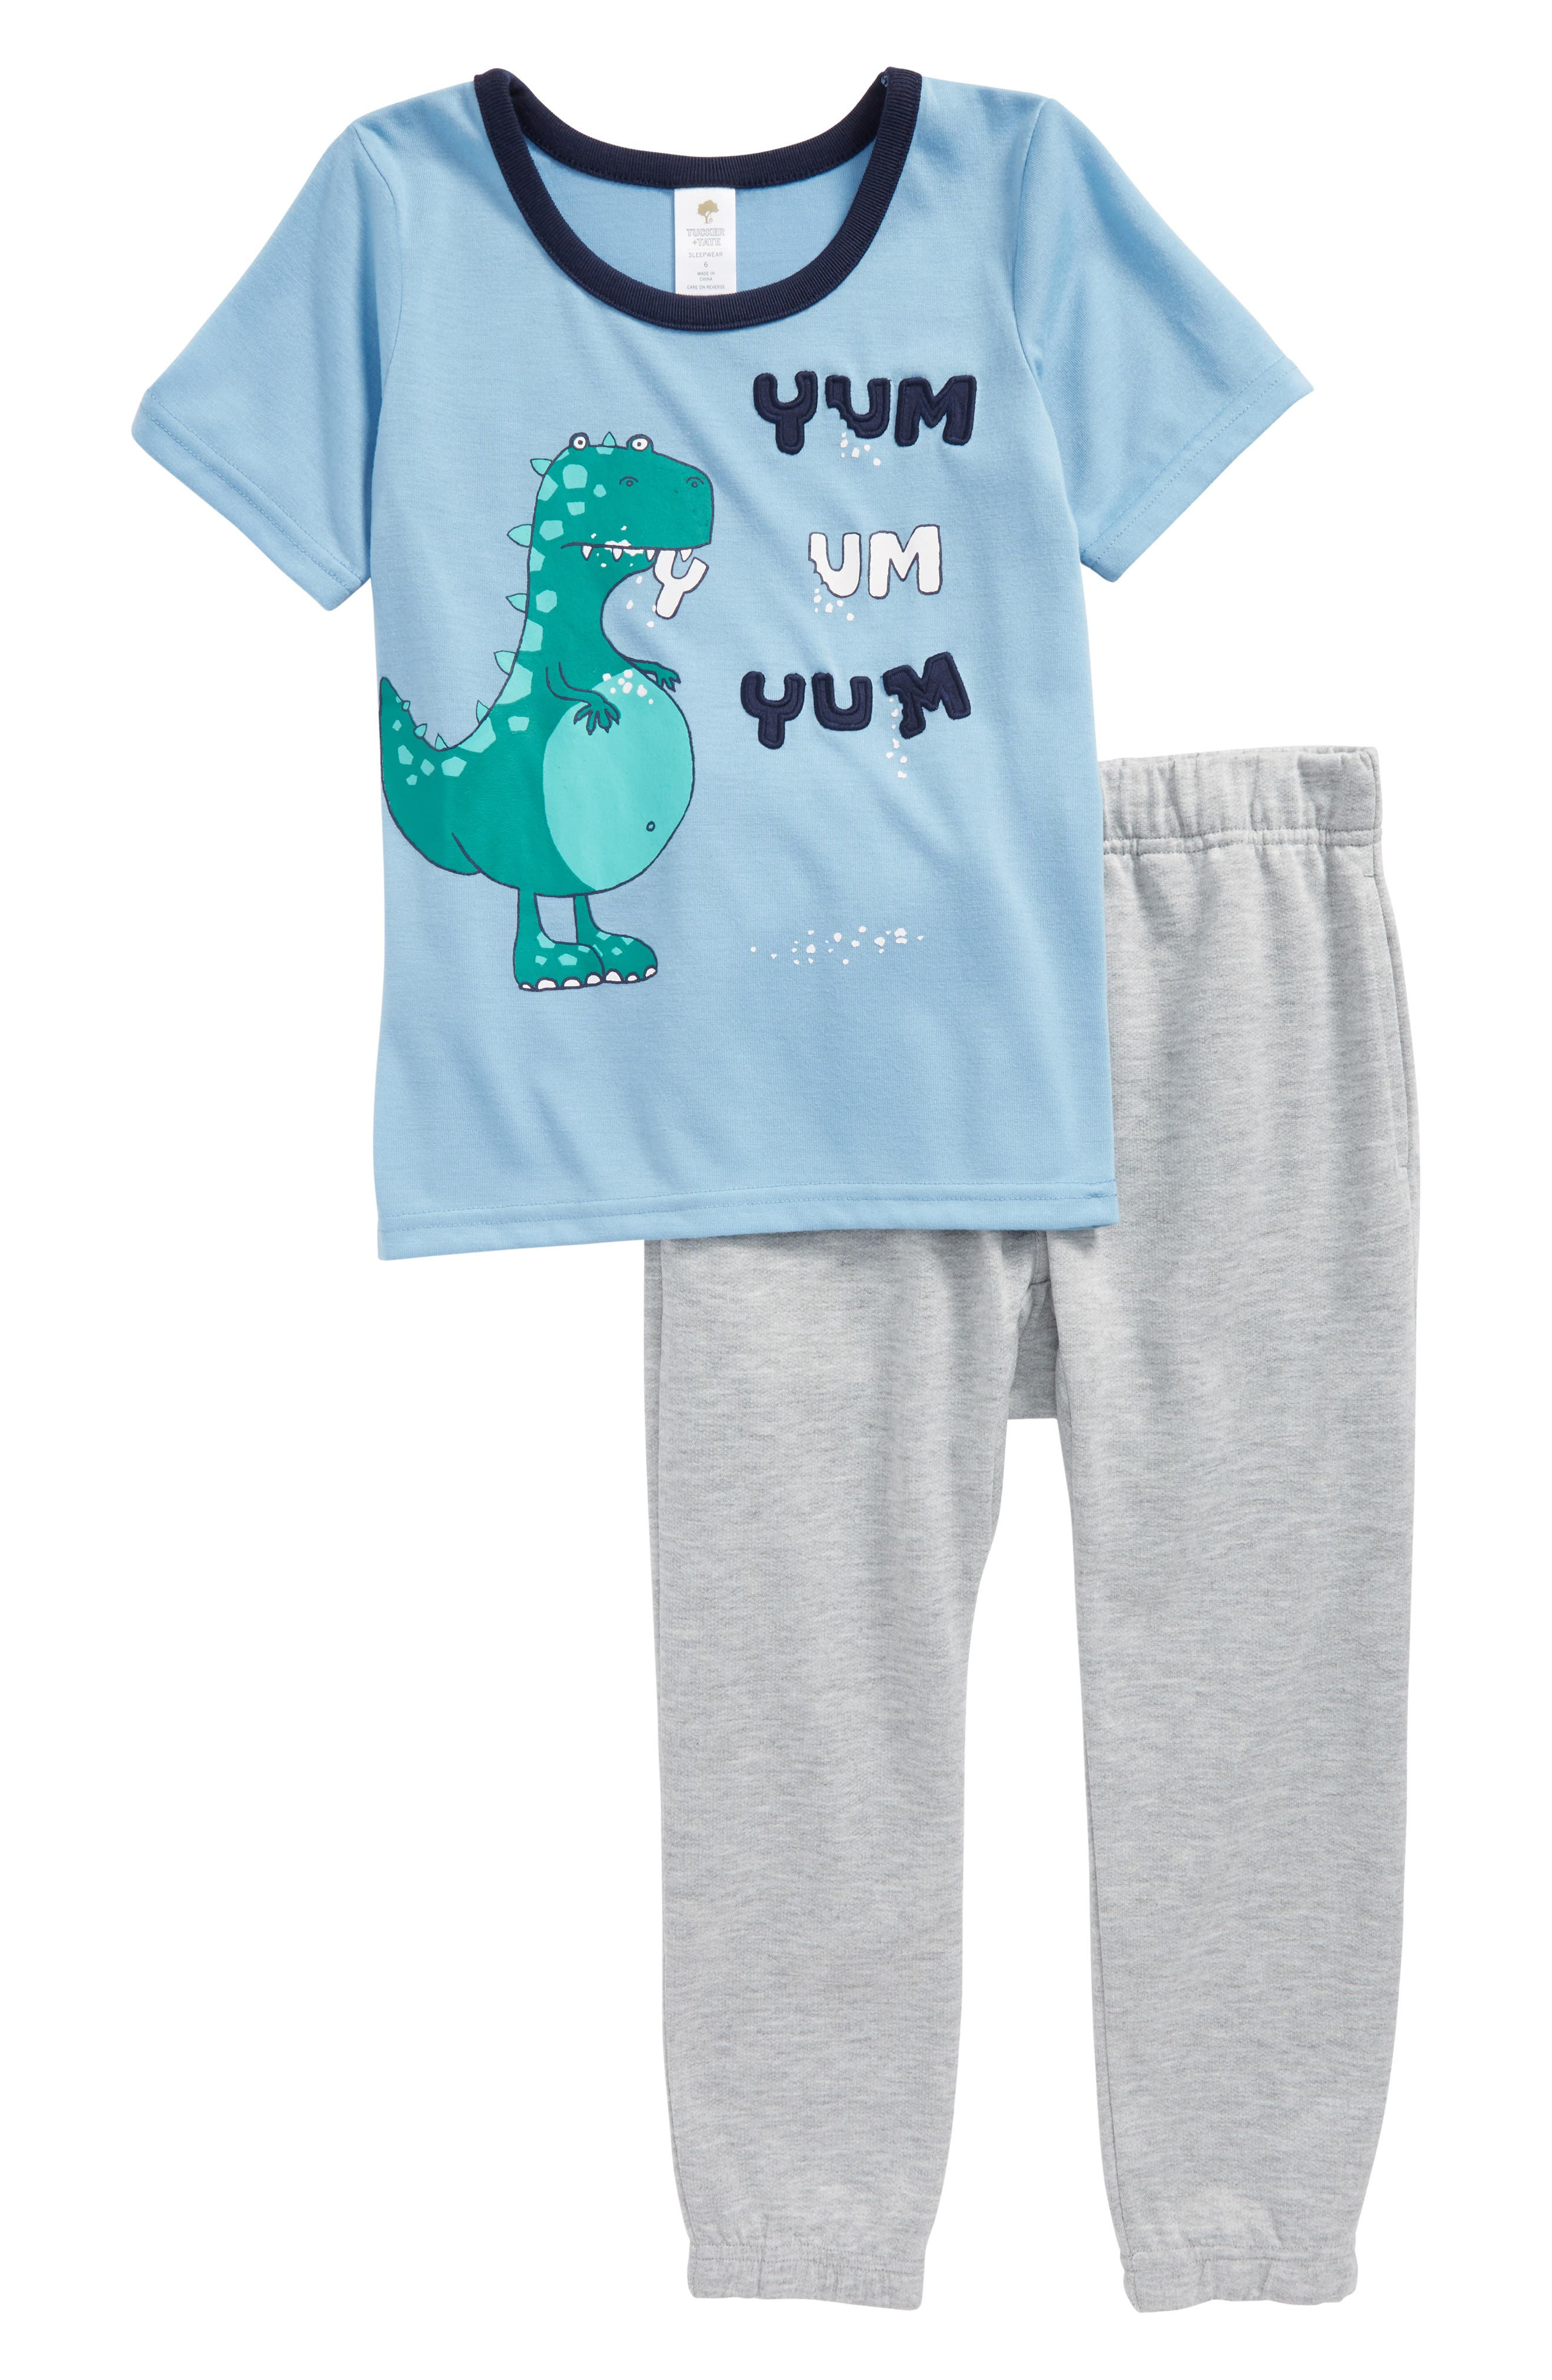 Tucker + Tate Yum Yum Two-Piece Pajamas (Toddler Boys, Little Boys & Big Boys)